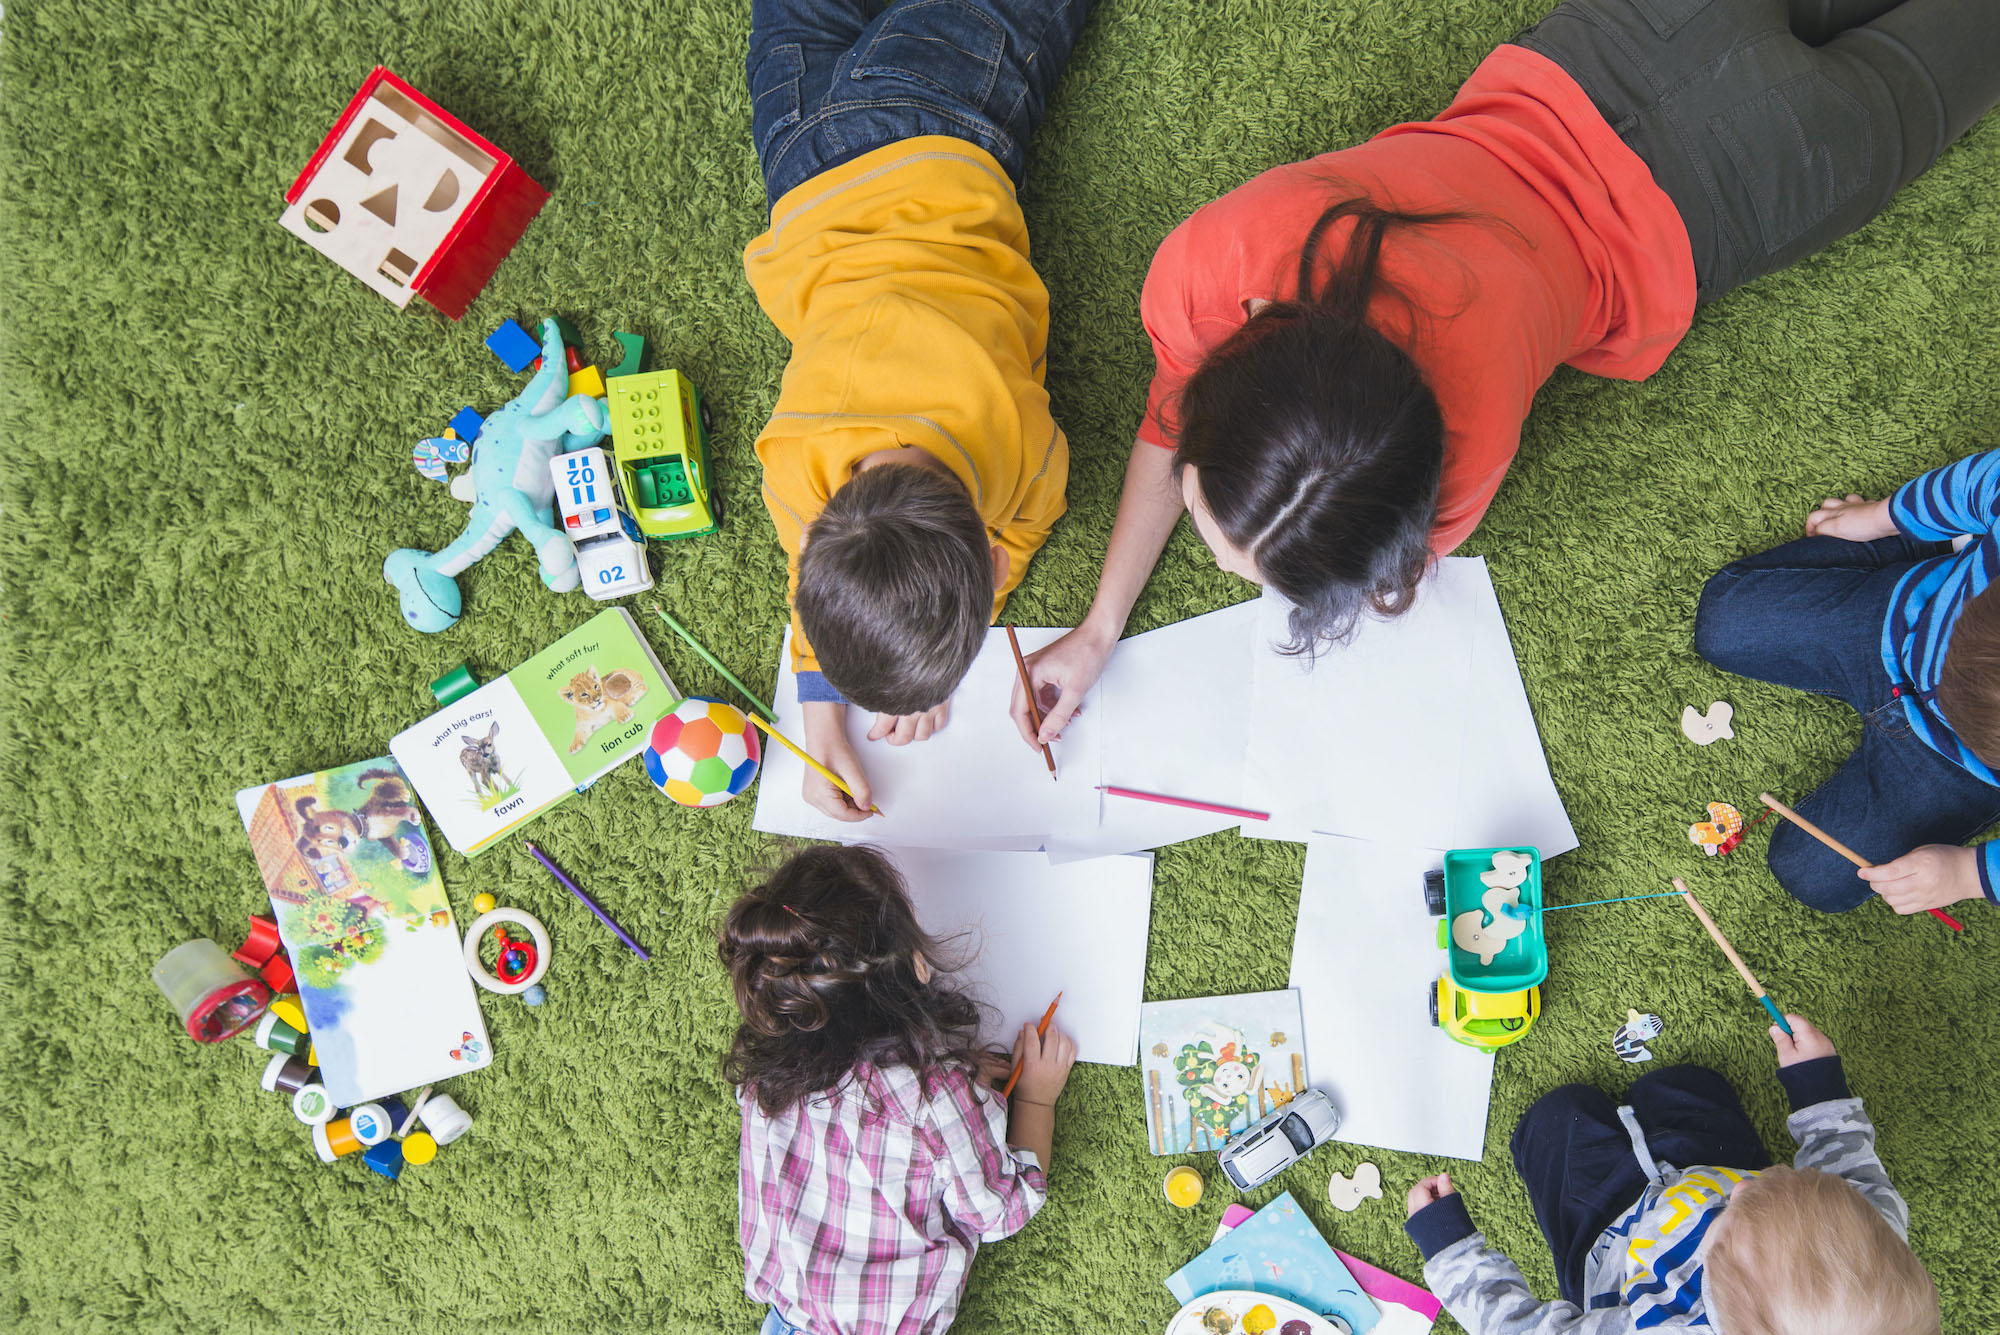 Fun Games & Competitions for Kids to Play Indoor